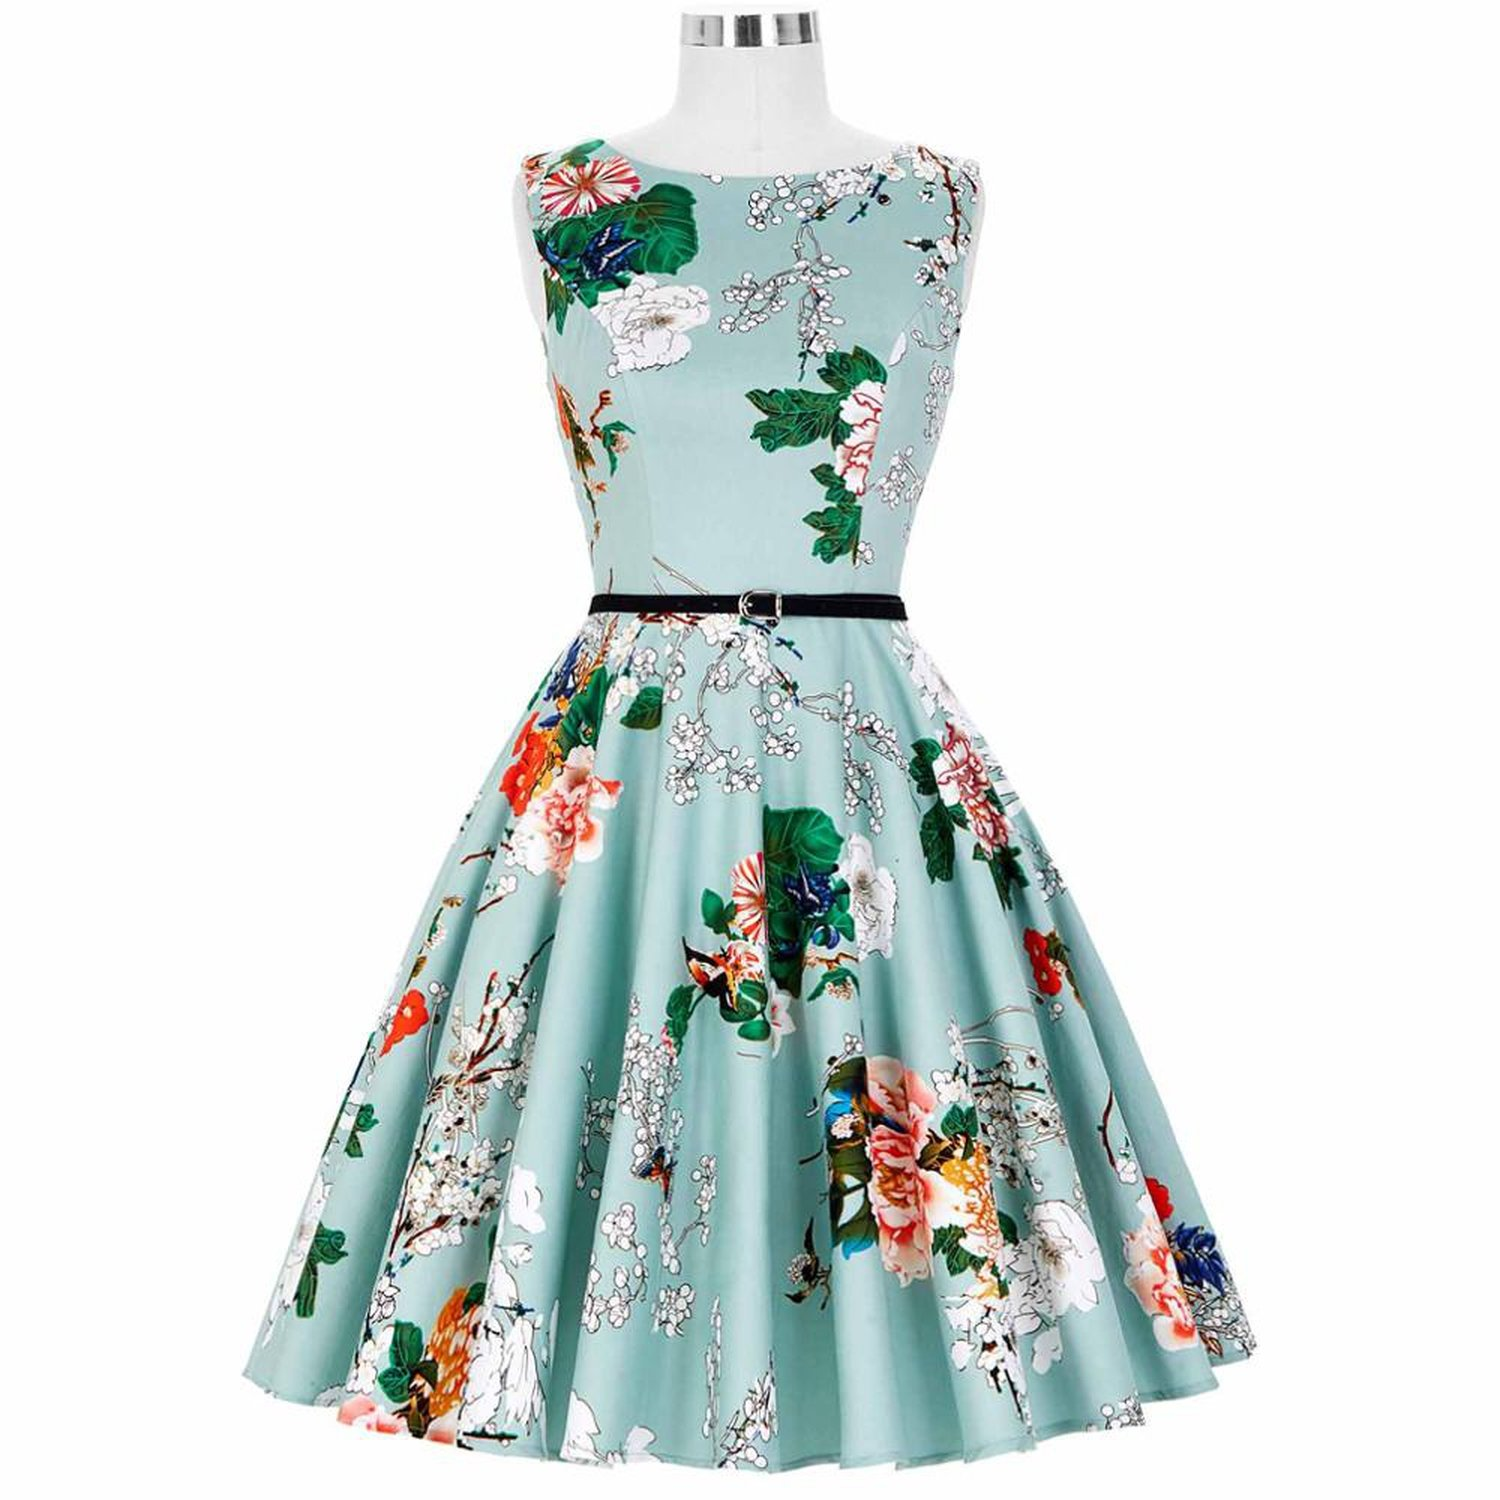 Big Size Audrey Hepburn Dresses Dress 2018 Floral Retro Pinup Rockabilly 50s Vintage Dresses Vestidos at Amazon Womens Clothing store: